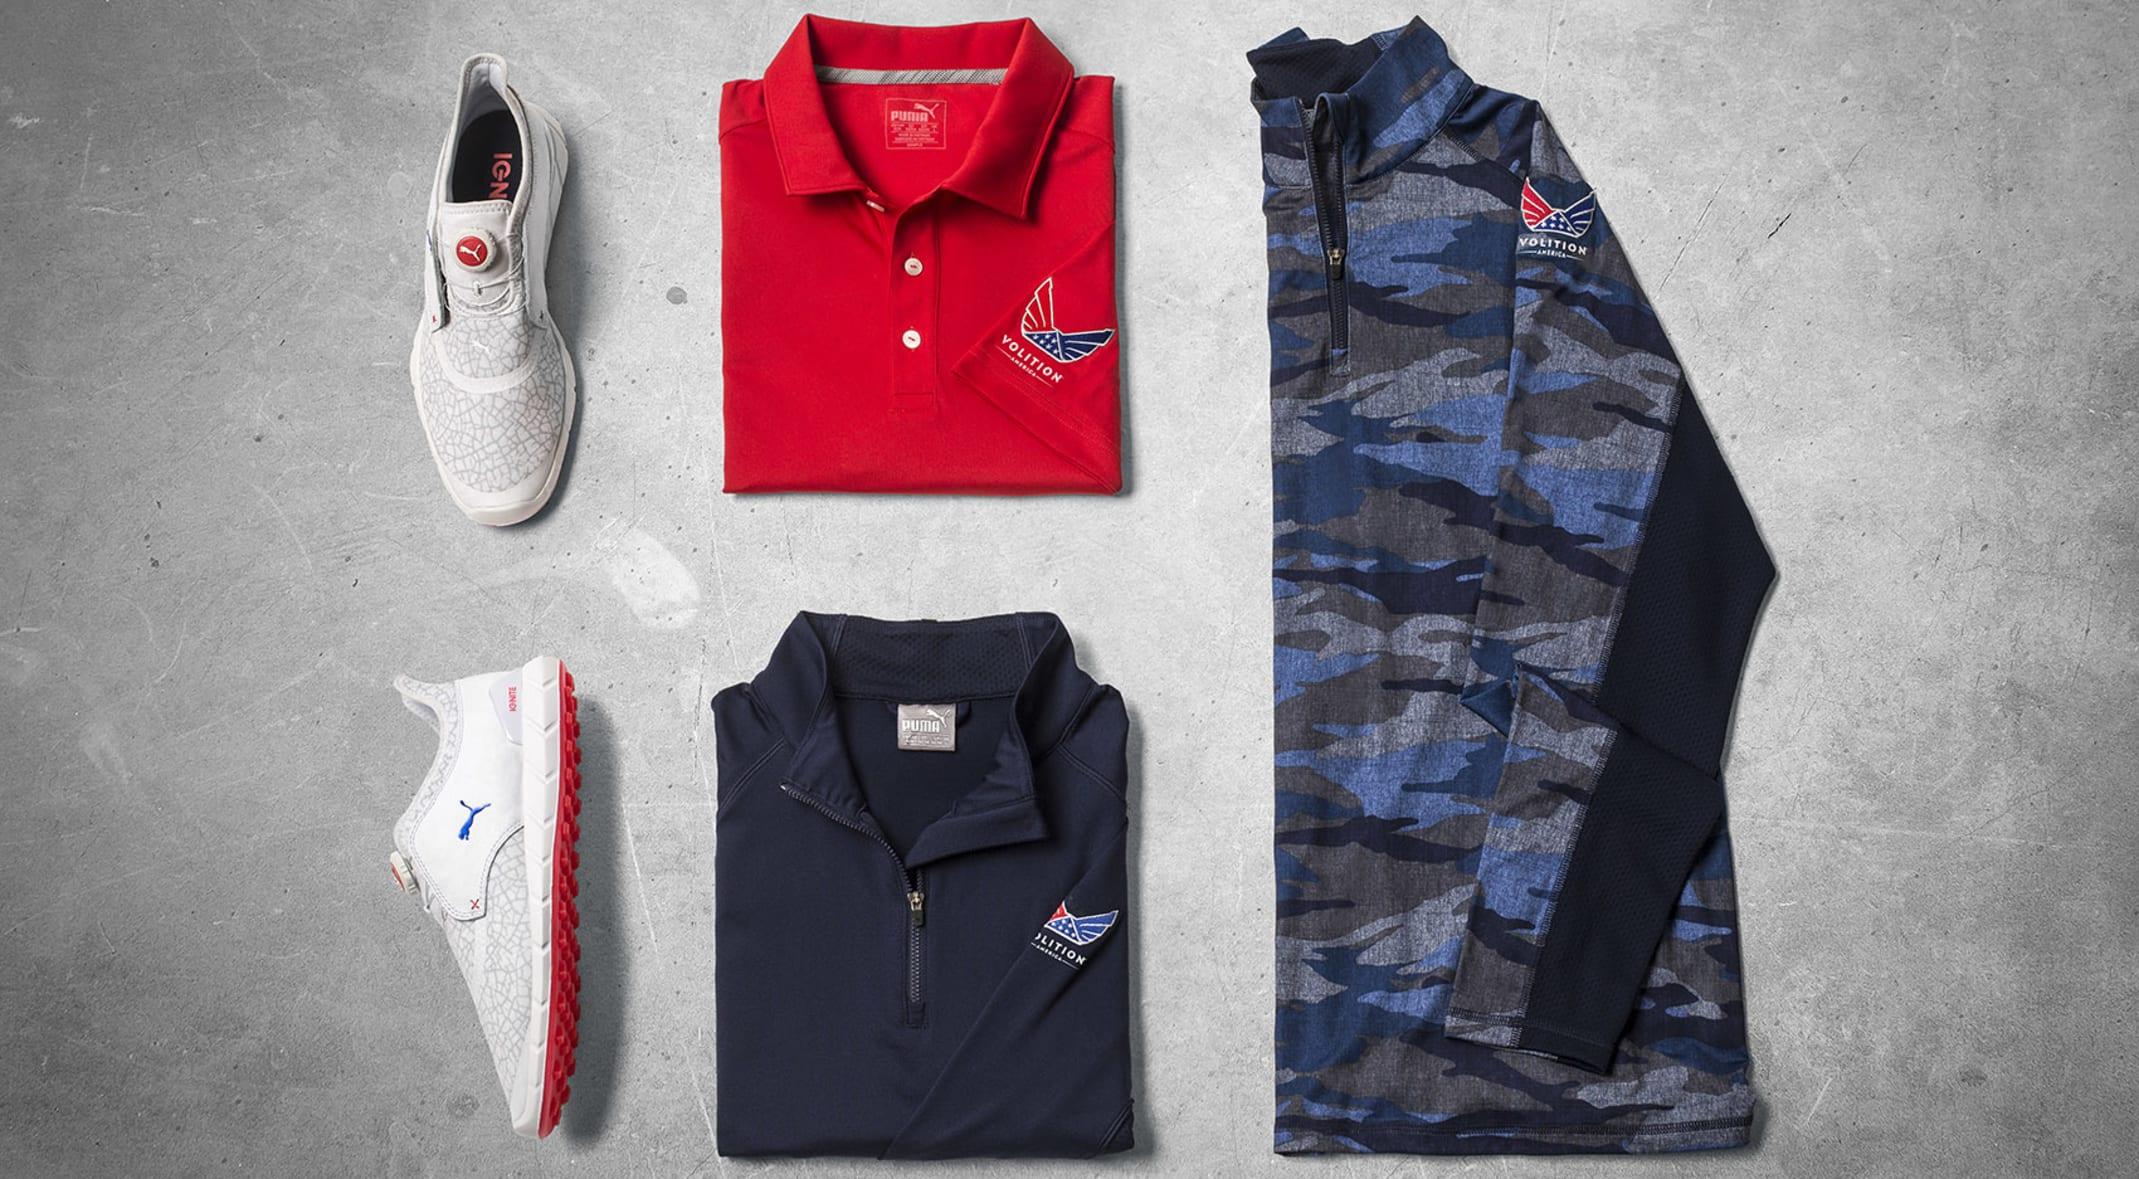 super popular d0454 c2c2d Puma s new Volition America Golf Collection, sales of which benefit the  families of fallen service